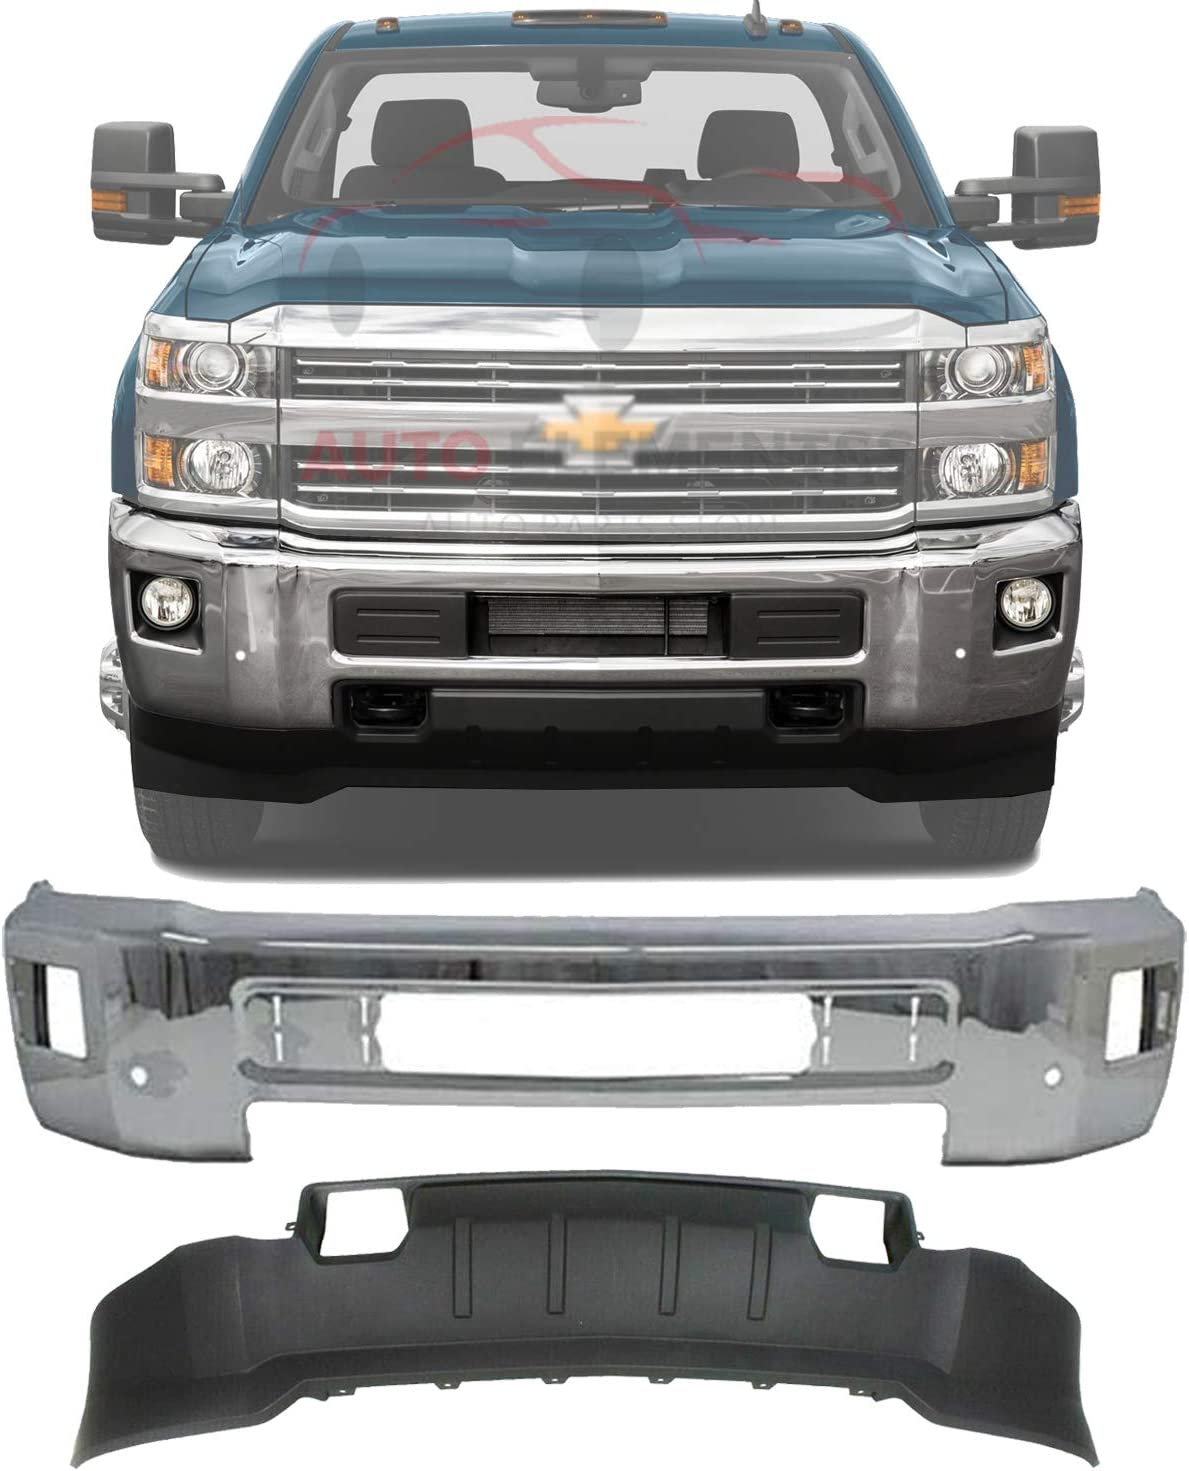 Buy New Front Bumper Chrome With Fog Light Parking Aid Sensor Holes Lower Valance Deflector With Tow Hook Holes Textured For 2015 2019 Chevrolet Silverado 2500hd 3500hd Direct Replacement 23229369 Online